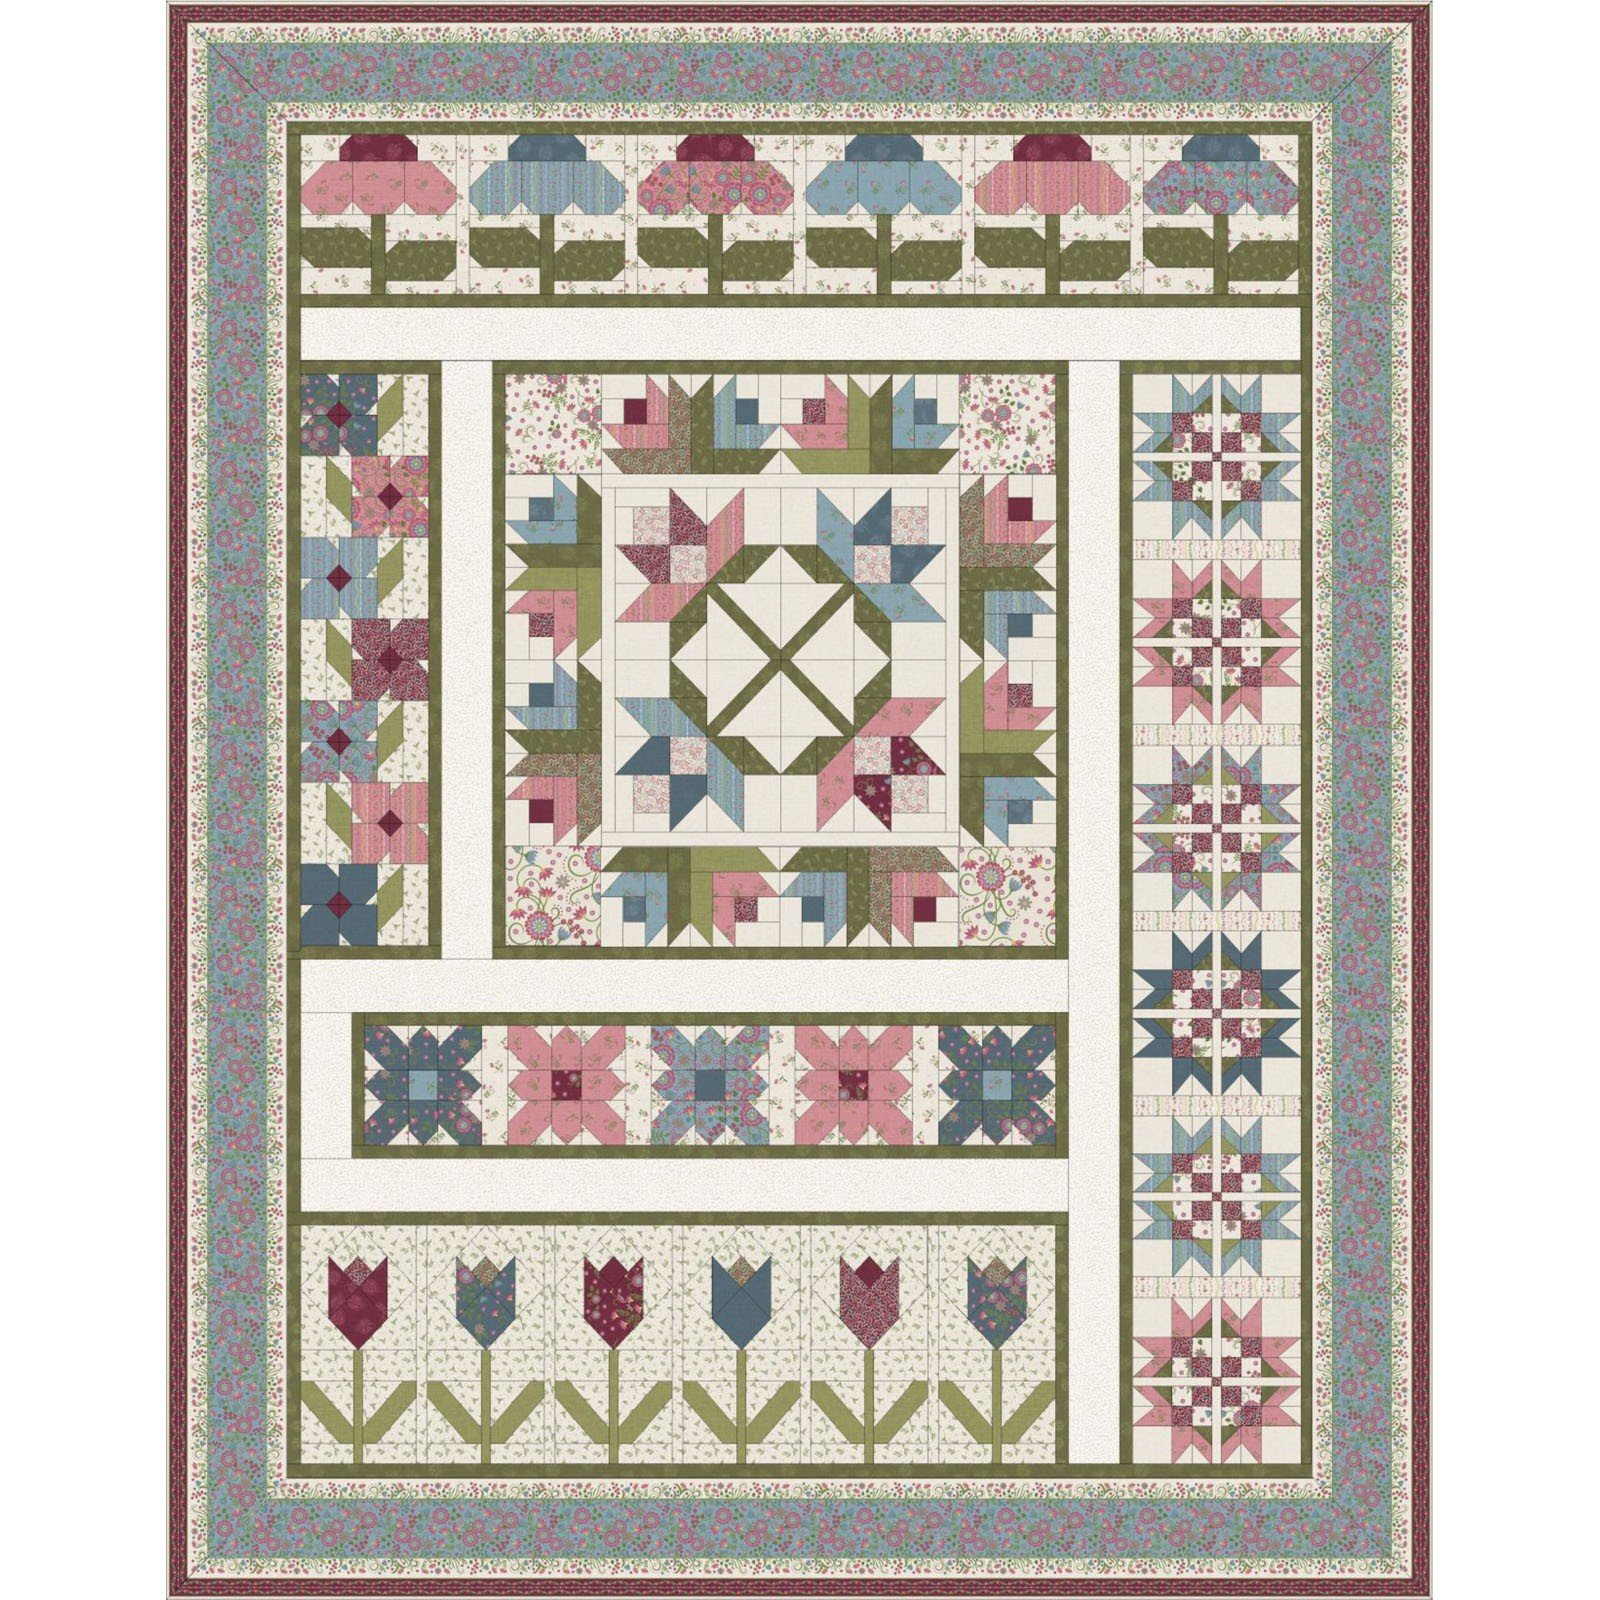 Flower Garden Block of the Month